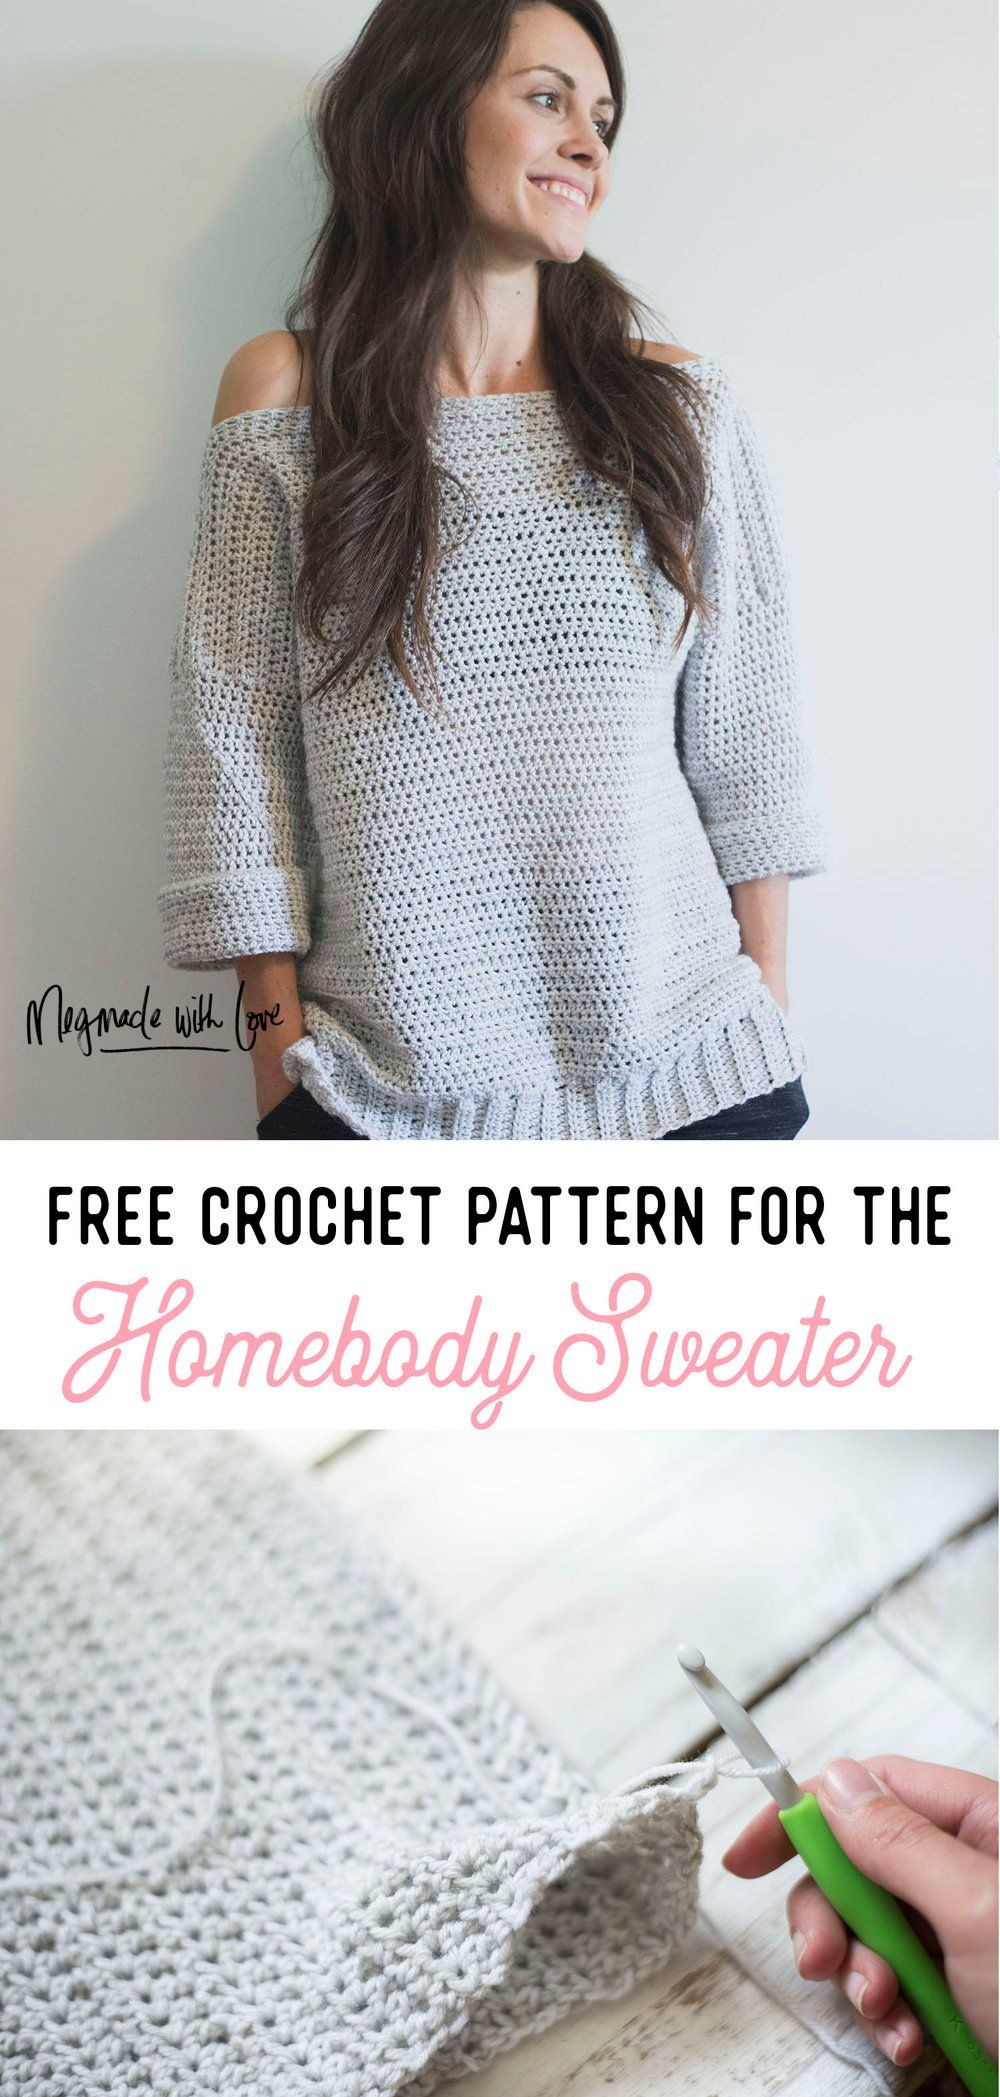 Free Crochet Pattern for The Homebody Sweater (Easy, Comfy and Cute ...